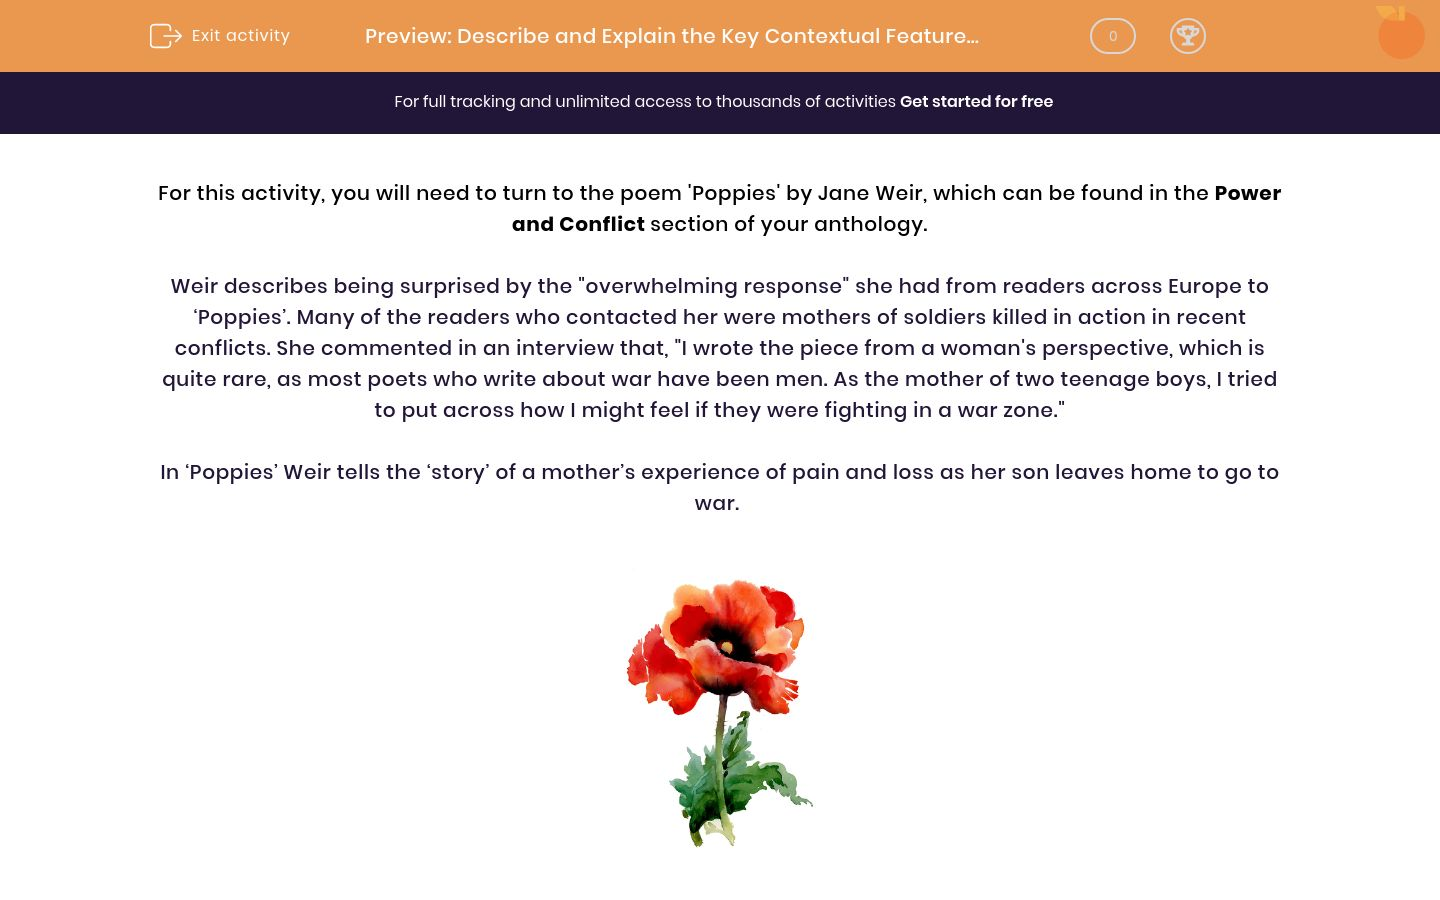 'Describe and Explain the Key Contextual Features of the Poem 'Poppies' by Jane Weir' worksheet